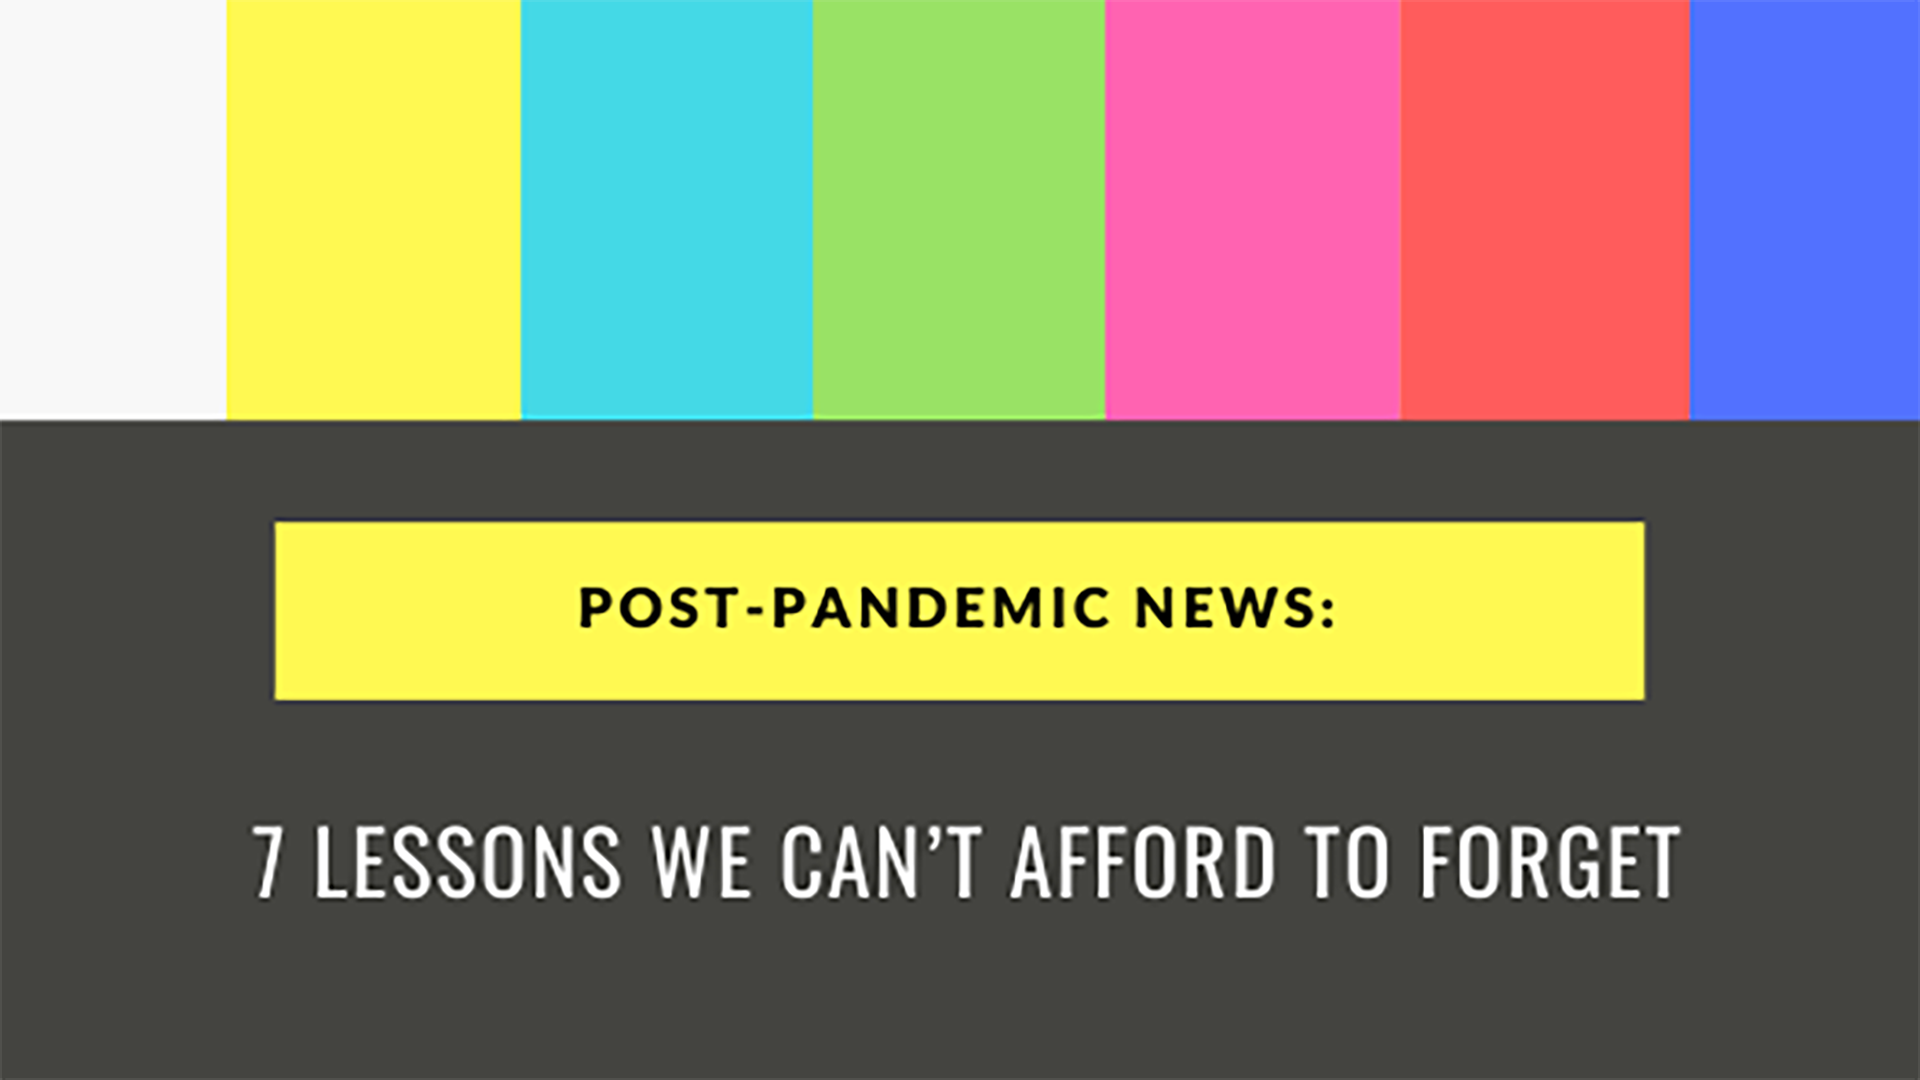 TV color bars with text that reads 7 Lessons We Can't Afford to Forget